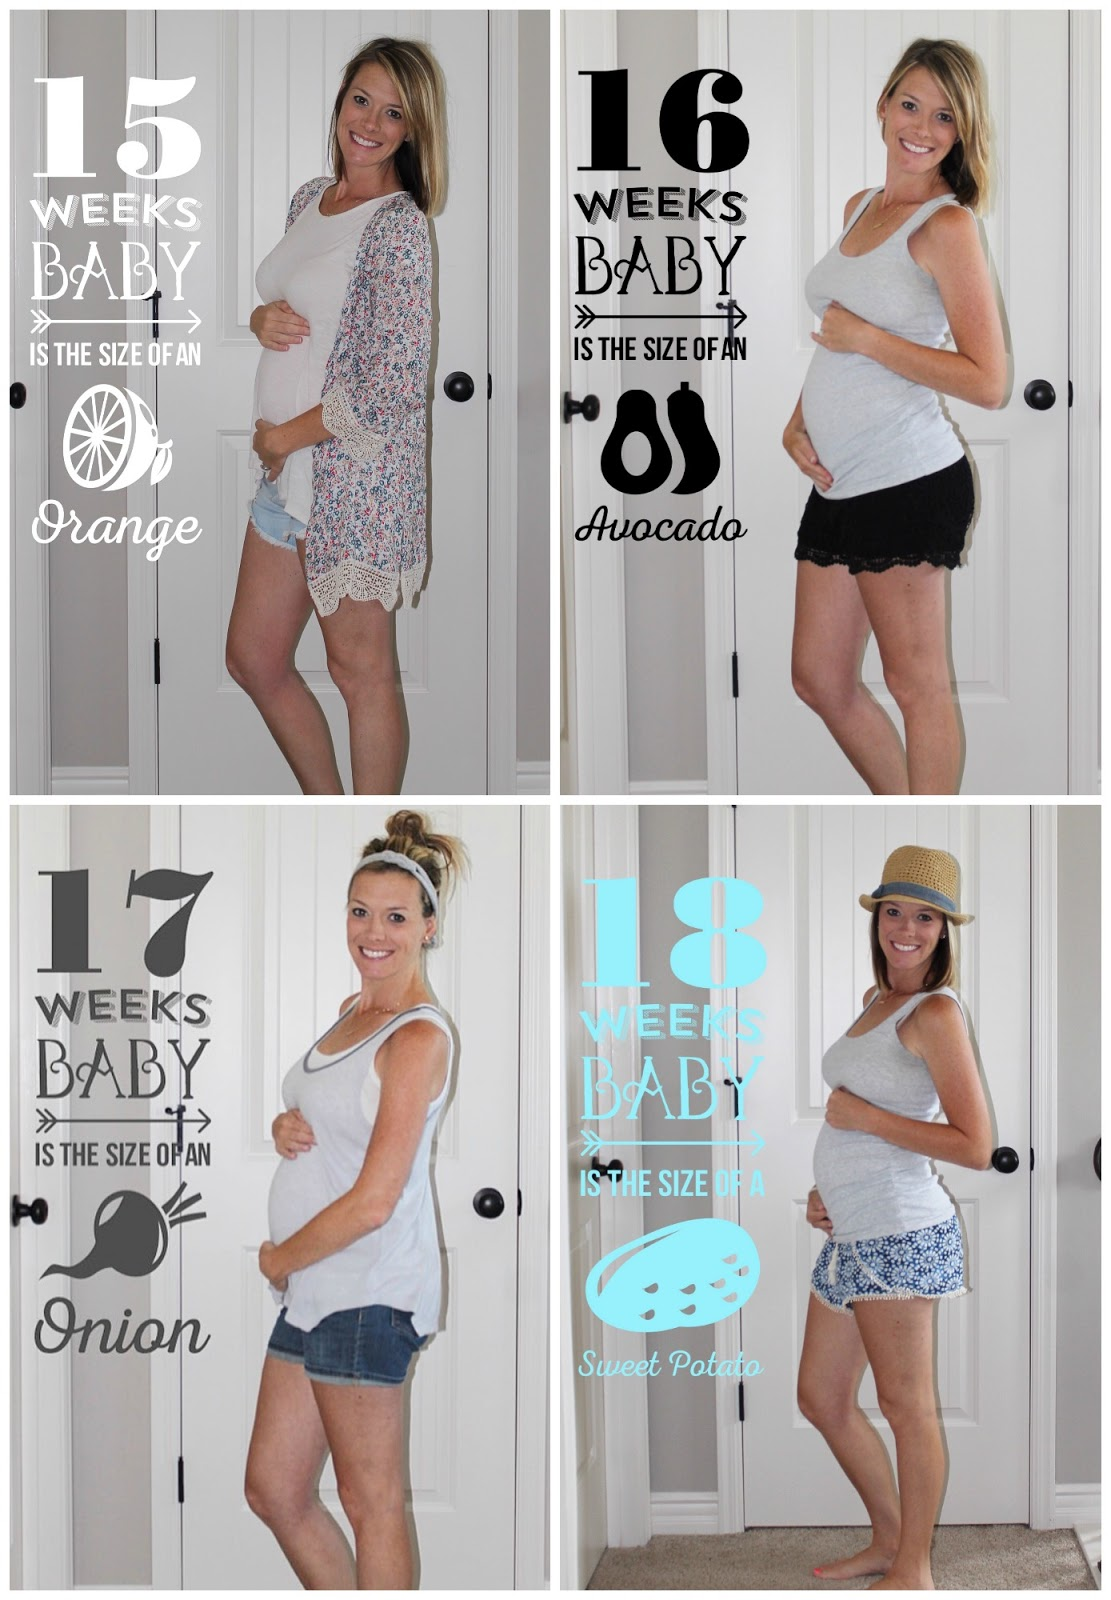 4 months pregnant size of baby